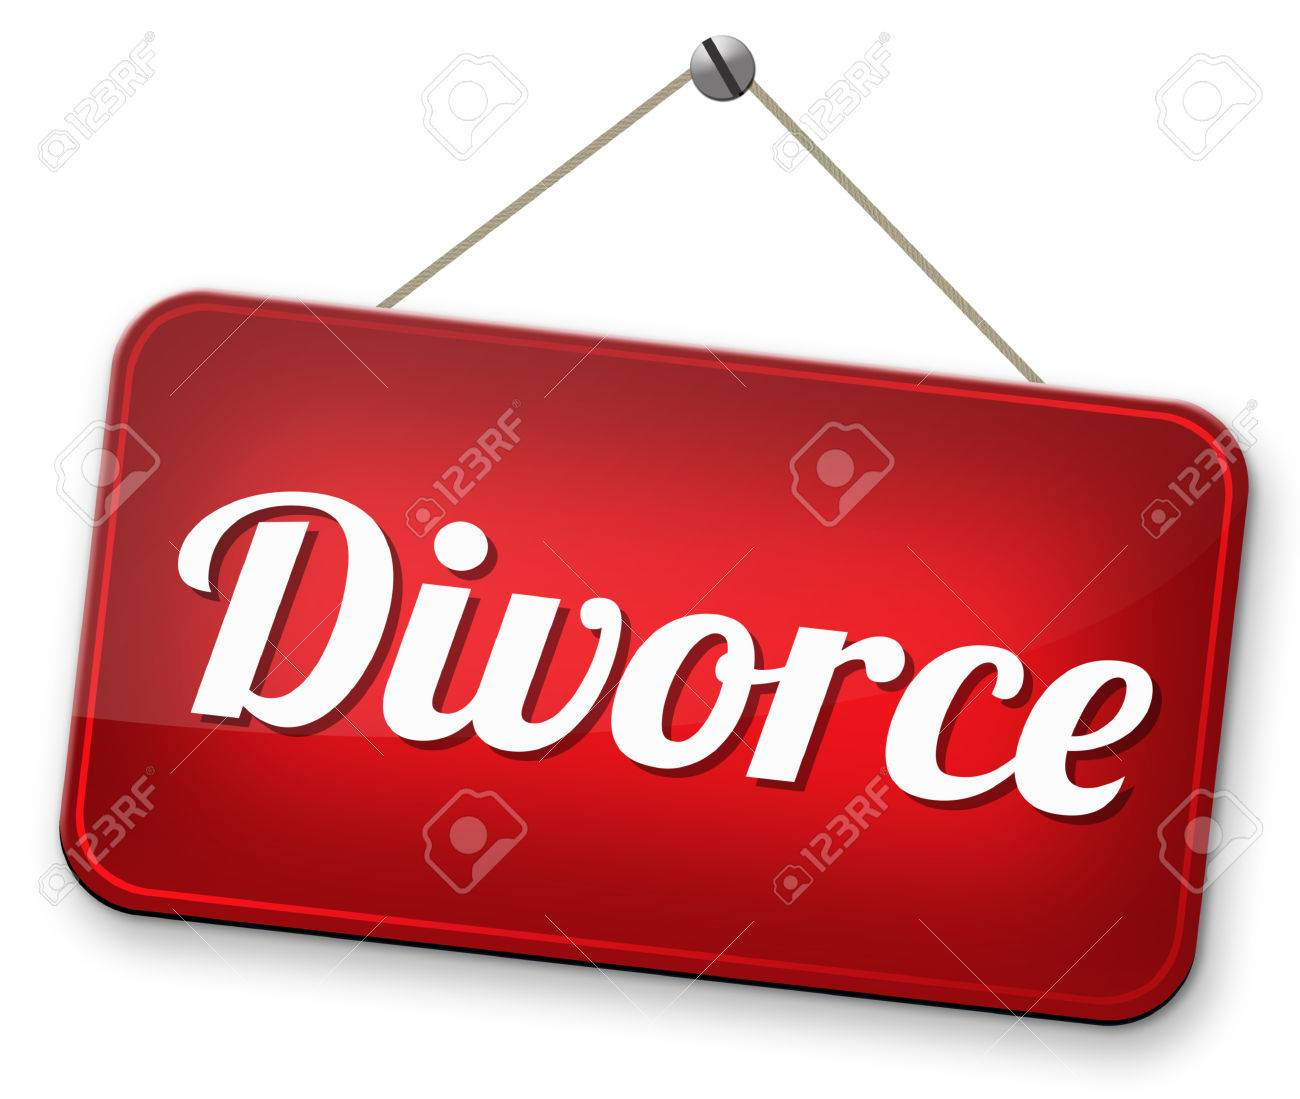 How To Find Out If Someone Is Divorced In Alabama